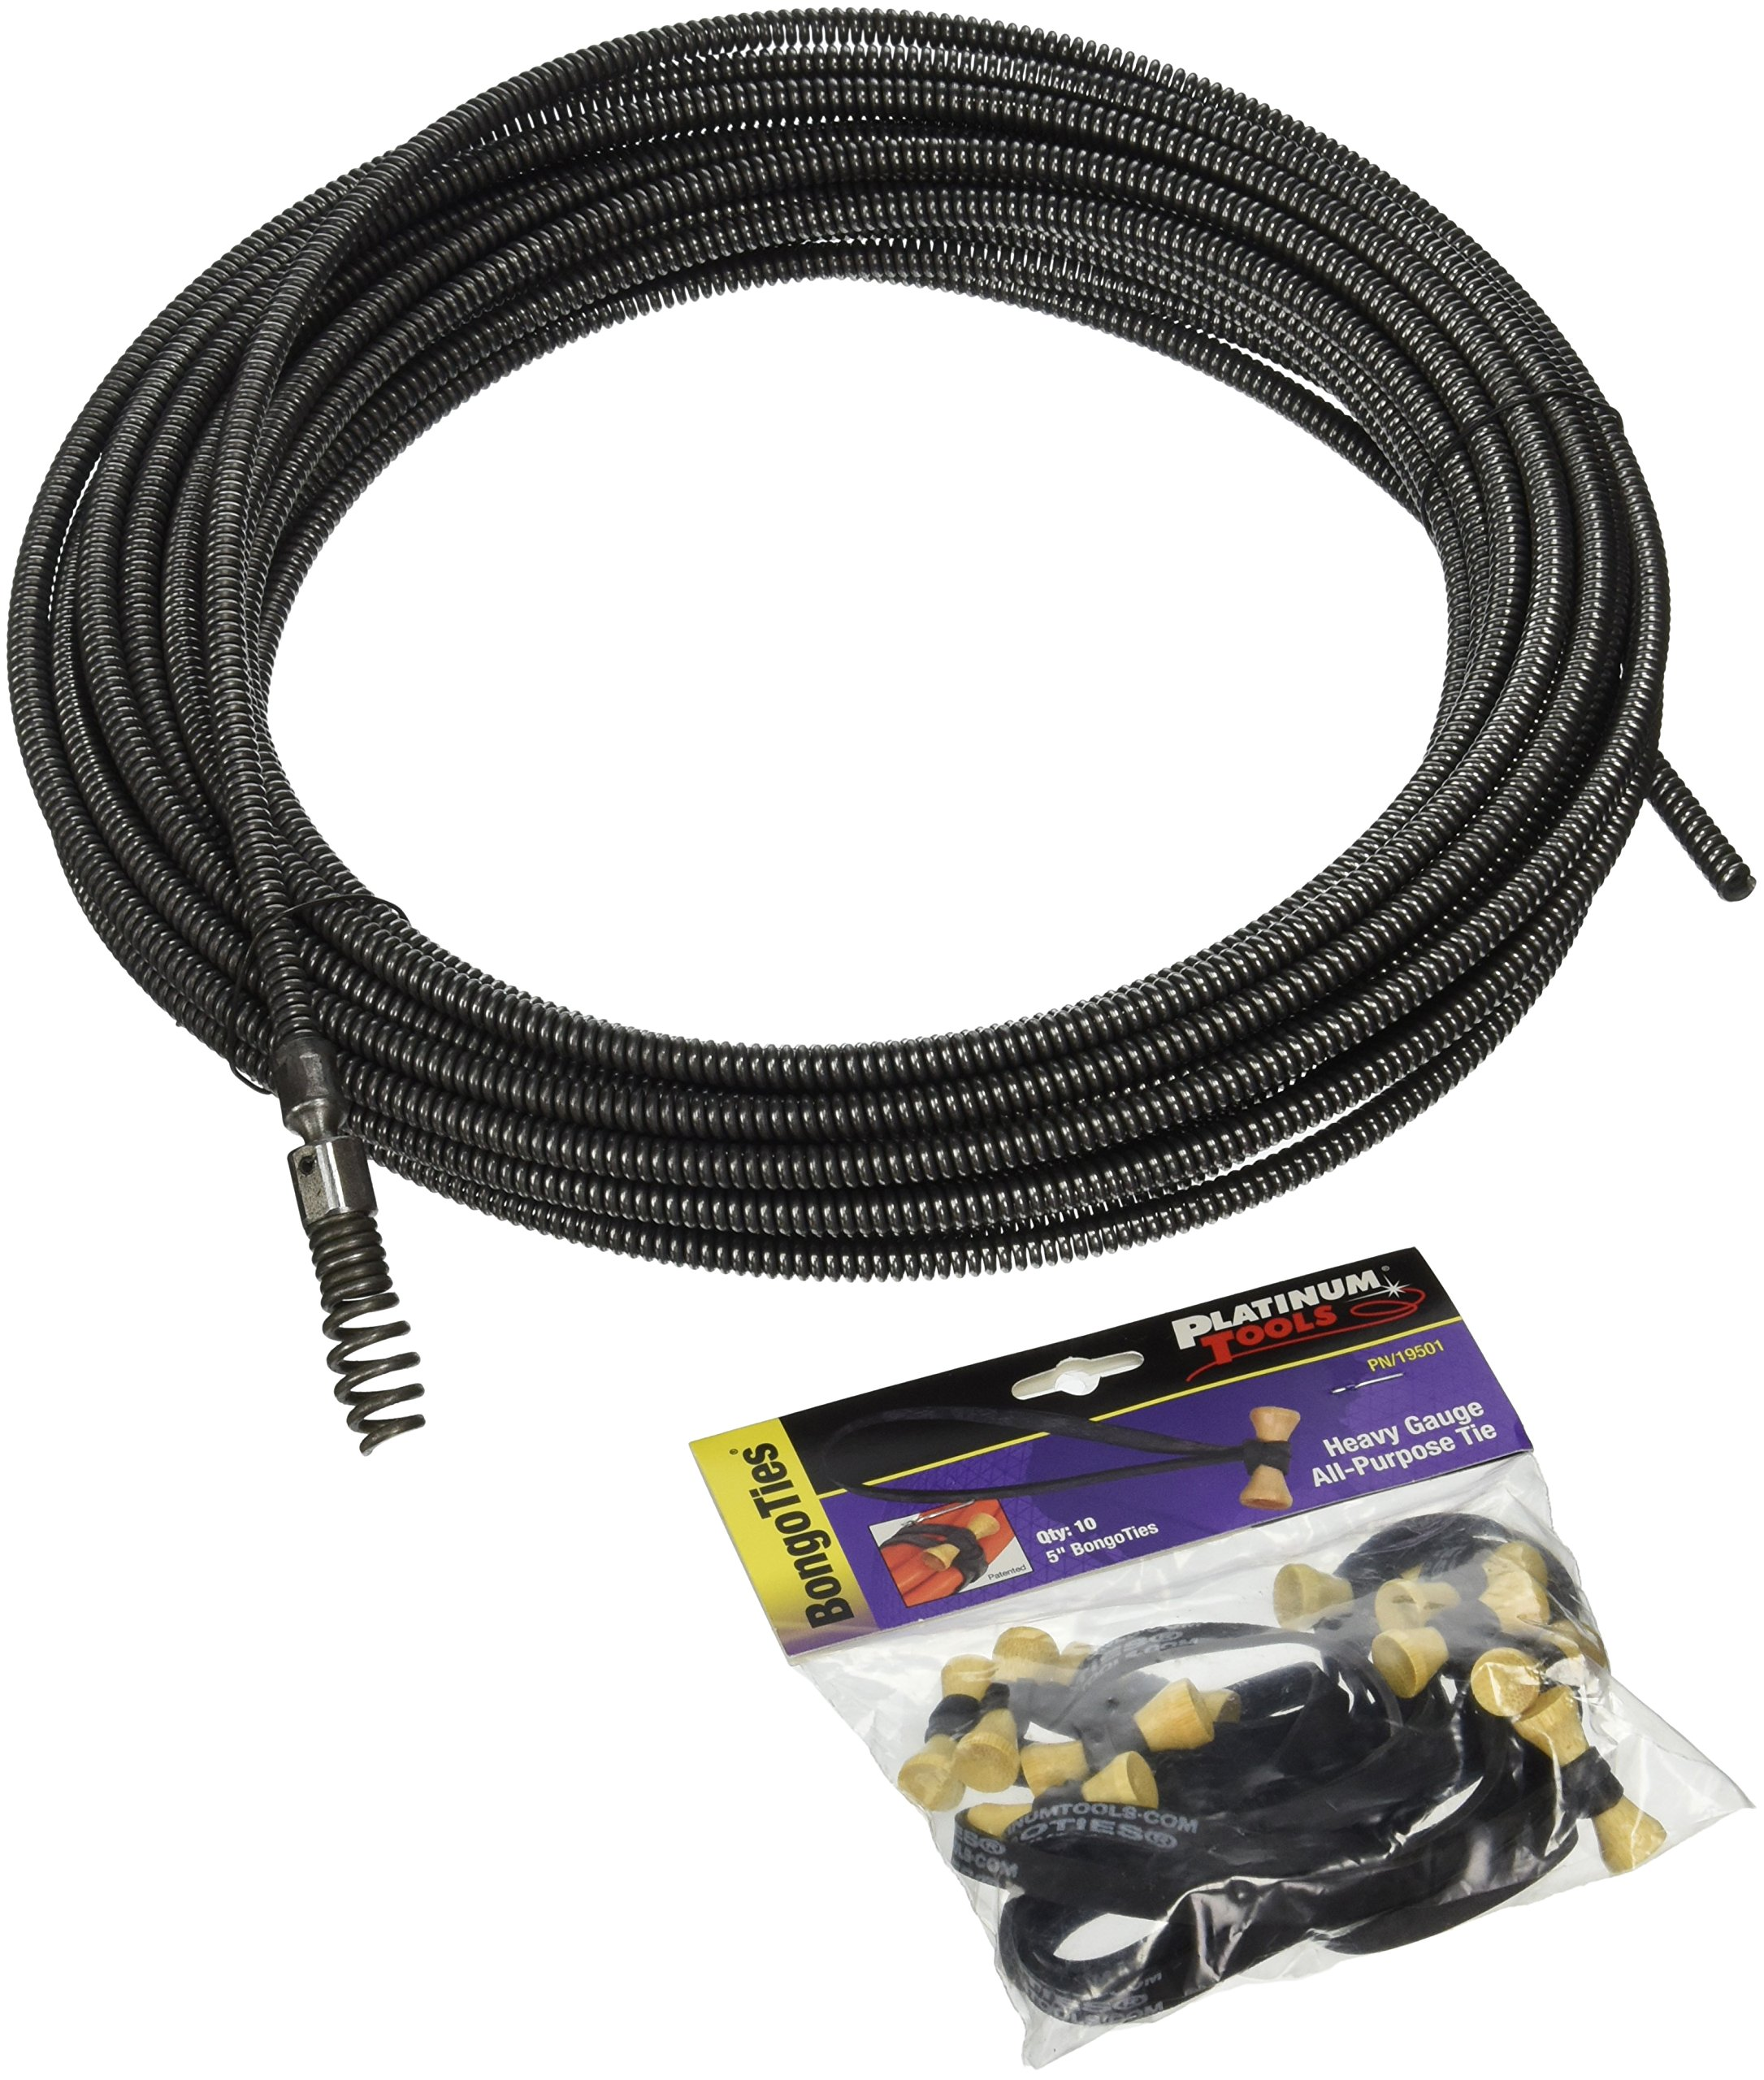 Ridgid 89405 5/16-Inch x 50-Feet C-22 Cable with Drop Head Auger by Ridgid